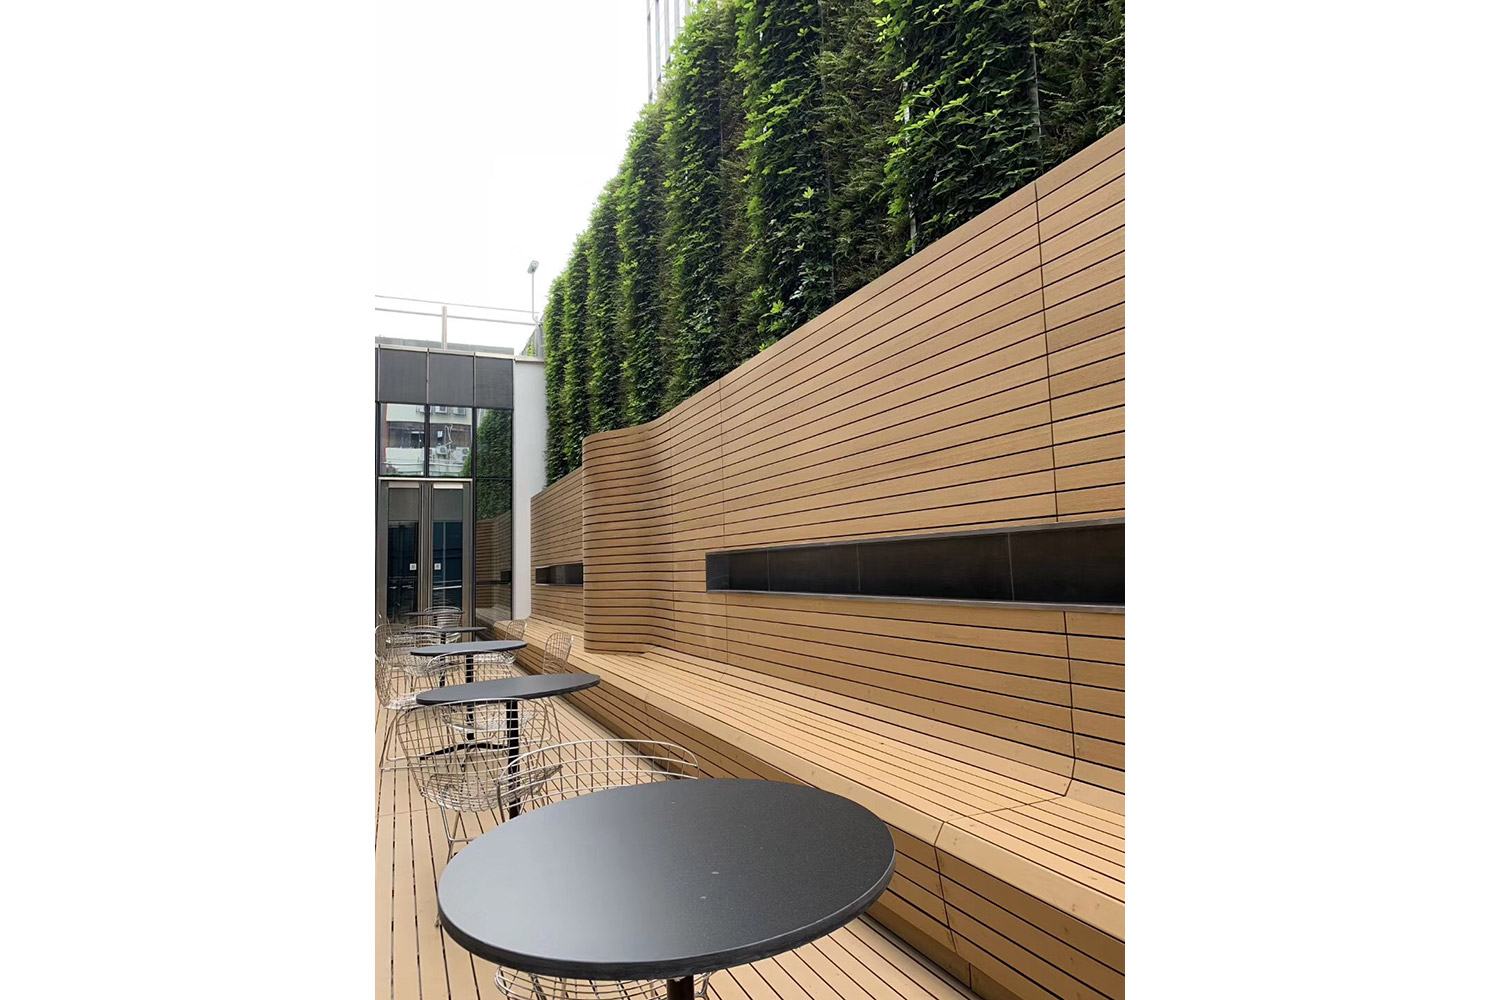 Avenues: The World School in Shenzhen, China consists of two locations in Shenzhen's Nanshan District. WSDG provided acoustic and A/V systems consulting as well as construction supervision for the two locations. Patio.